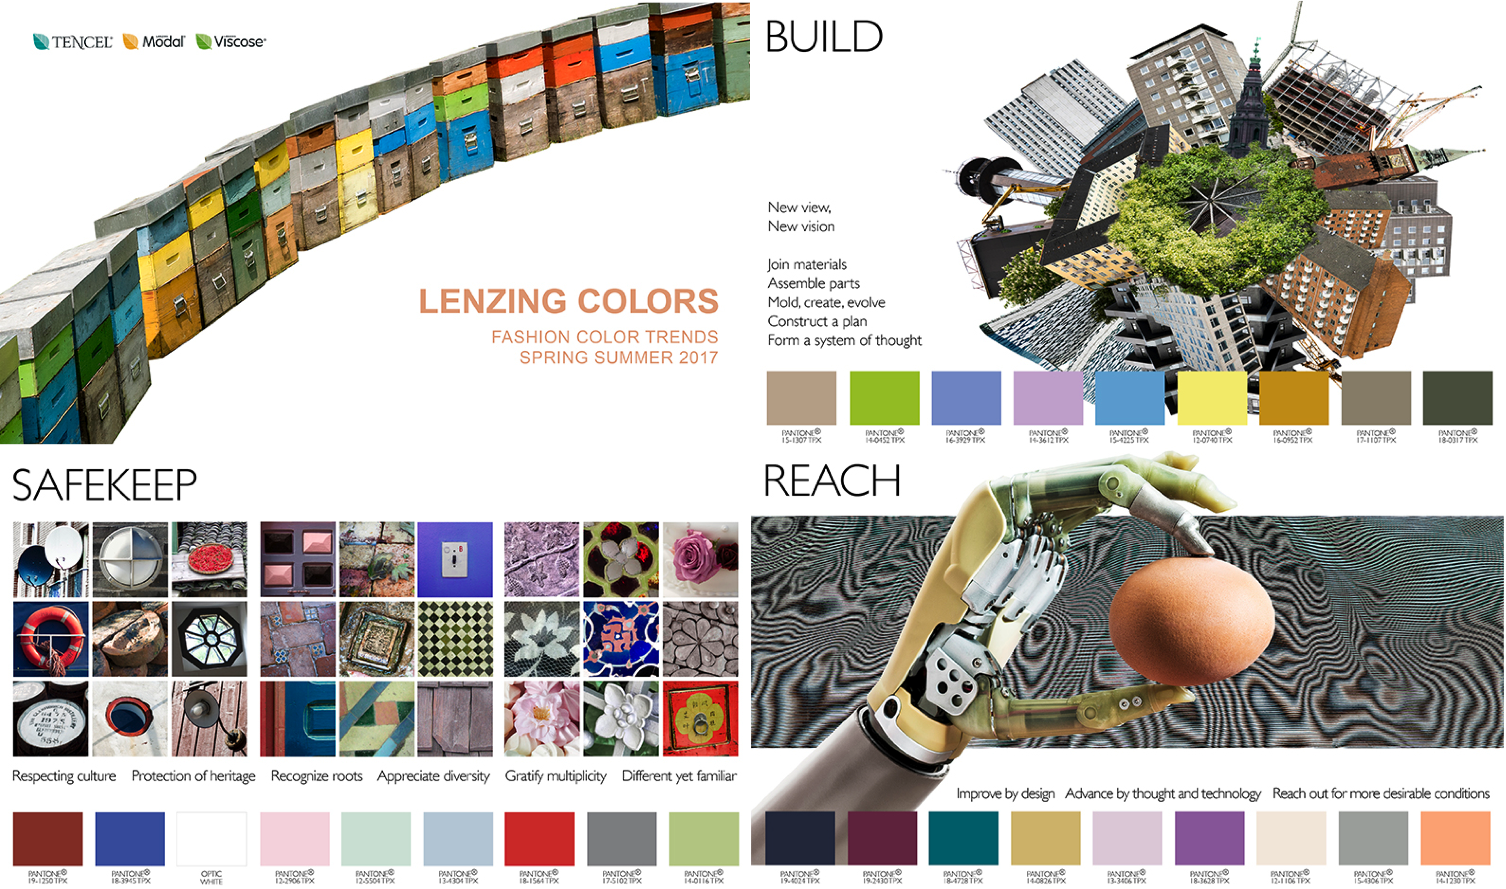 Fashion Spring/Summer 2017 Colour Forecast for Lenzing